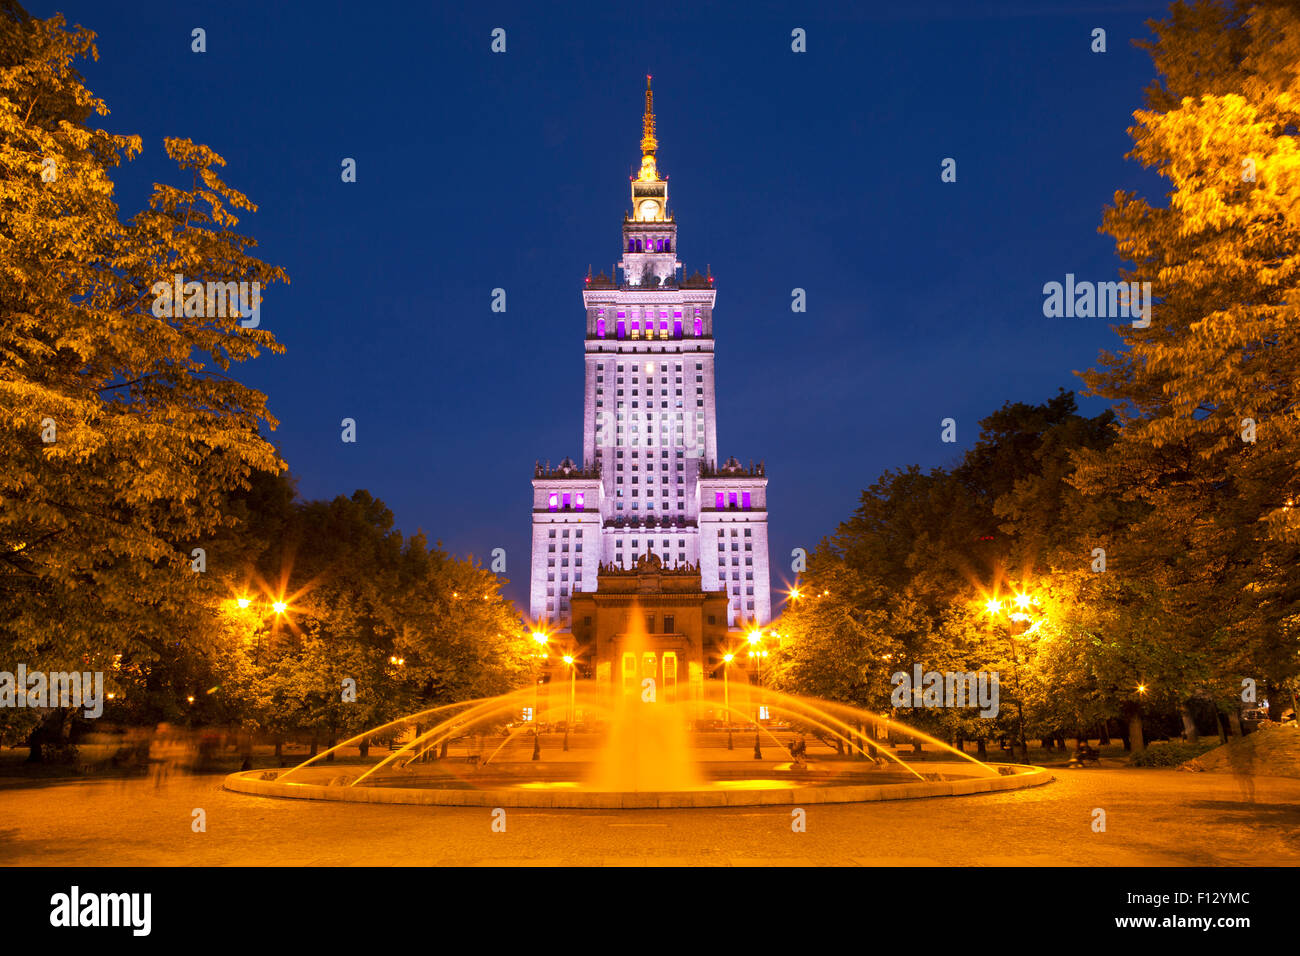 The Palace of Culture and Science in Warsaw, Poland at night. Stock Photo